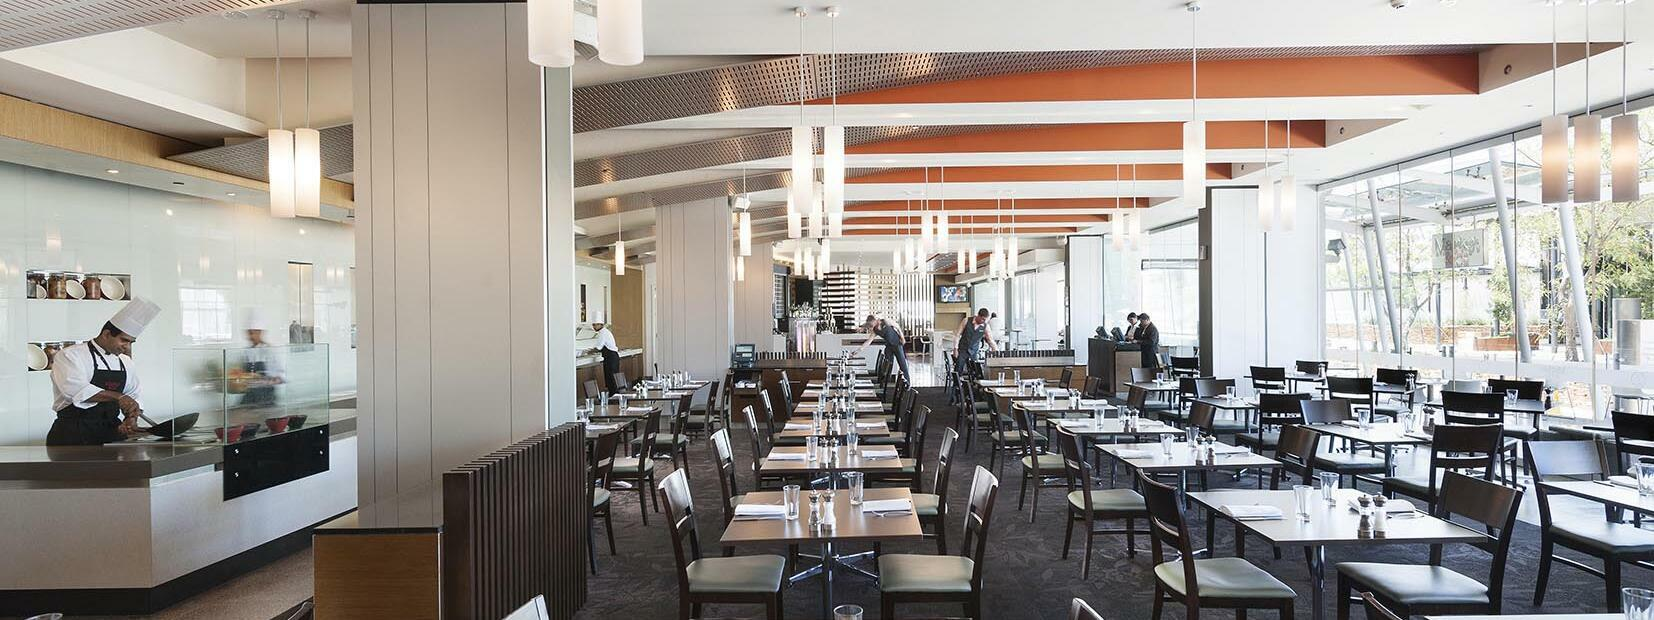 Market & Co event room at Crown Towers Perth